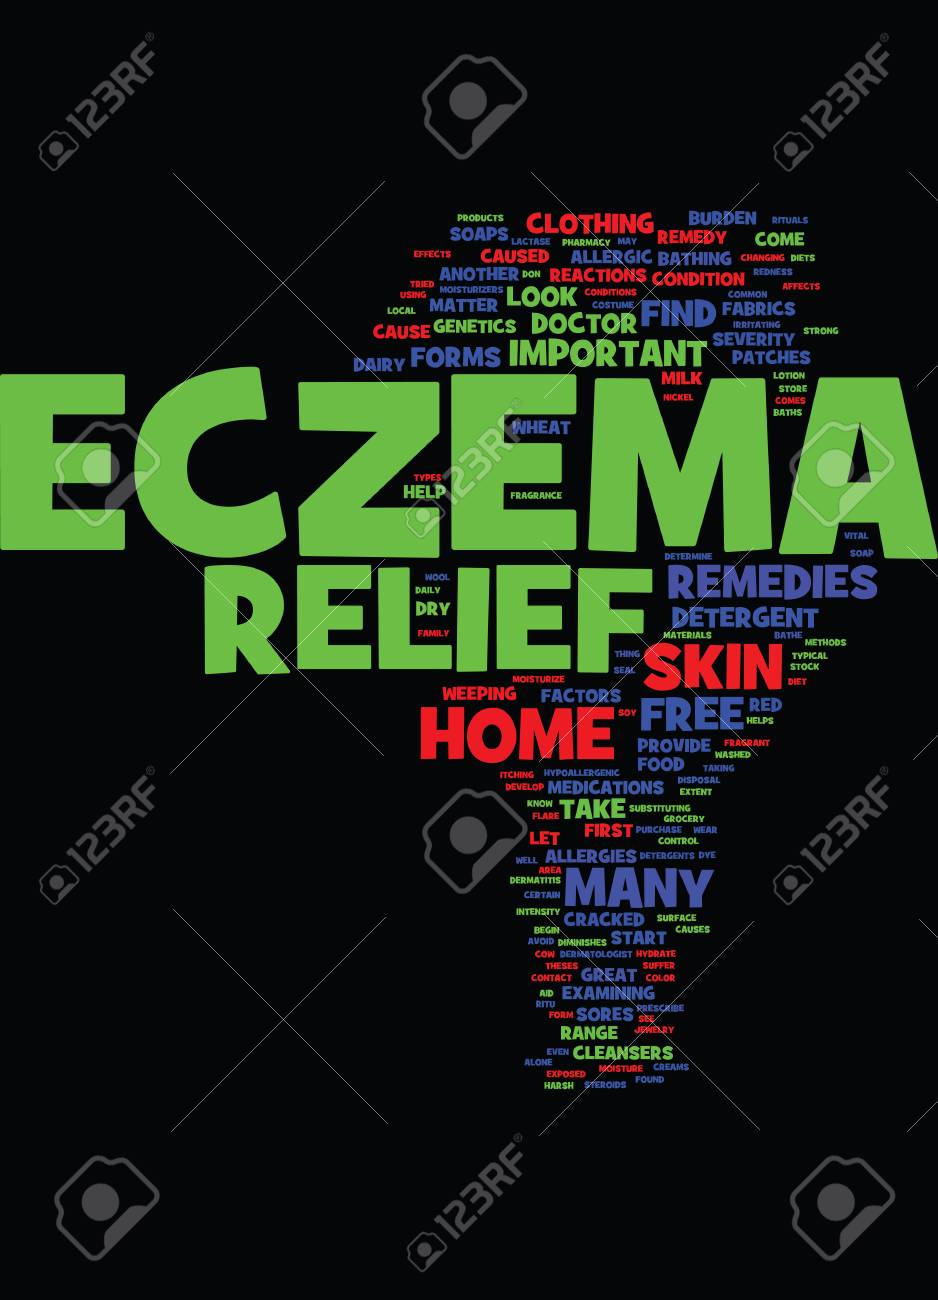 METHODS THAT AID IN ECZEMA RELIEF Text Background Word Cloud 938x1300